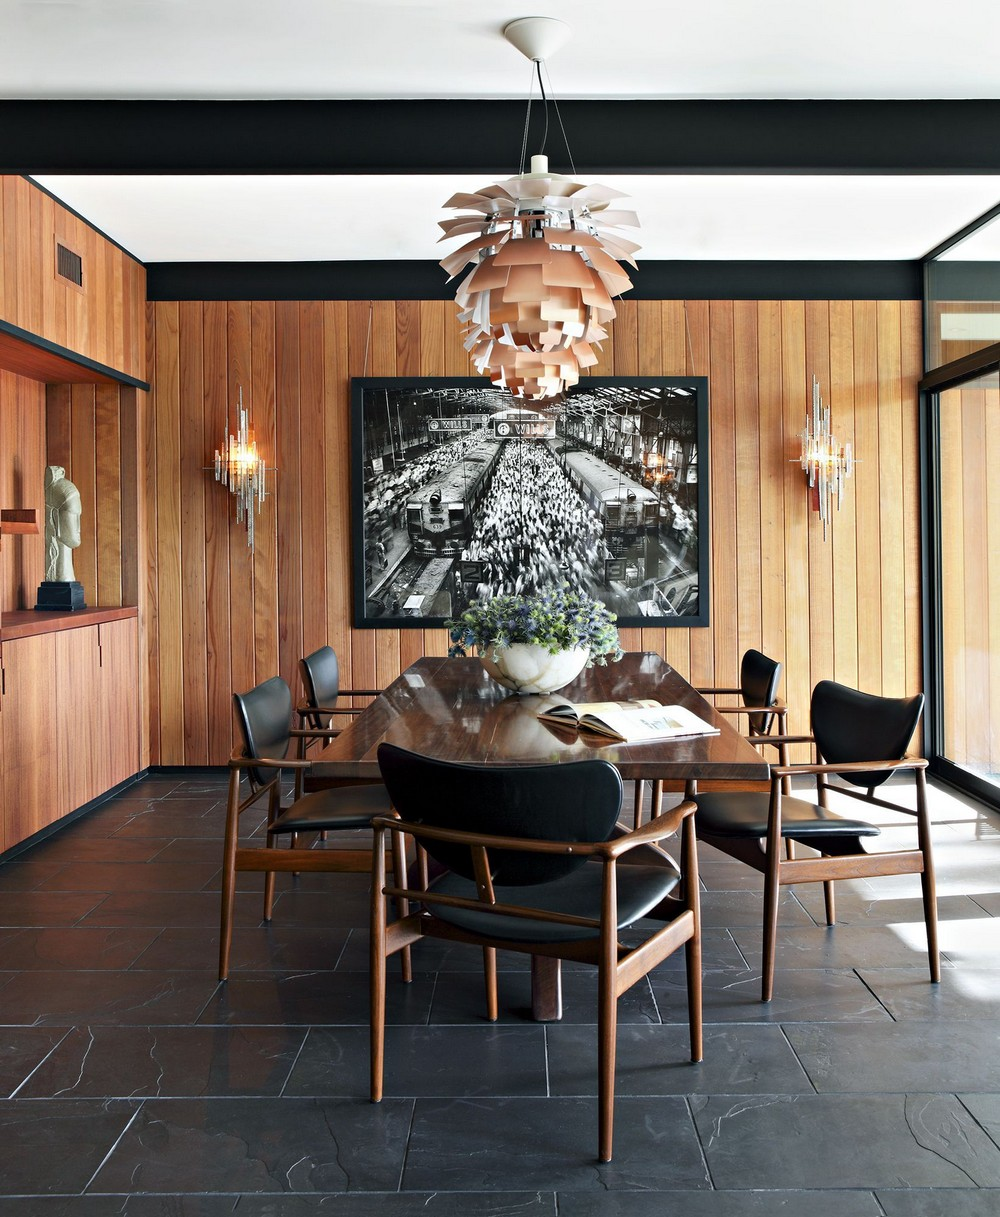 Jamie Bush: Modern Dining Rooms For Luxury Homes jamie bush Jamie Bush: Modern Dining Rooms For Luxury Homes 5 Jamie Bush